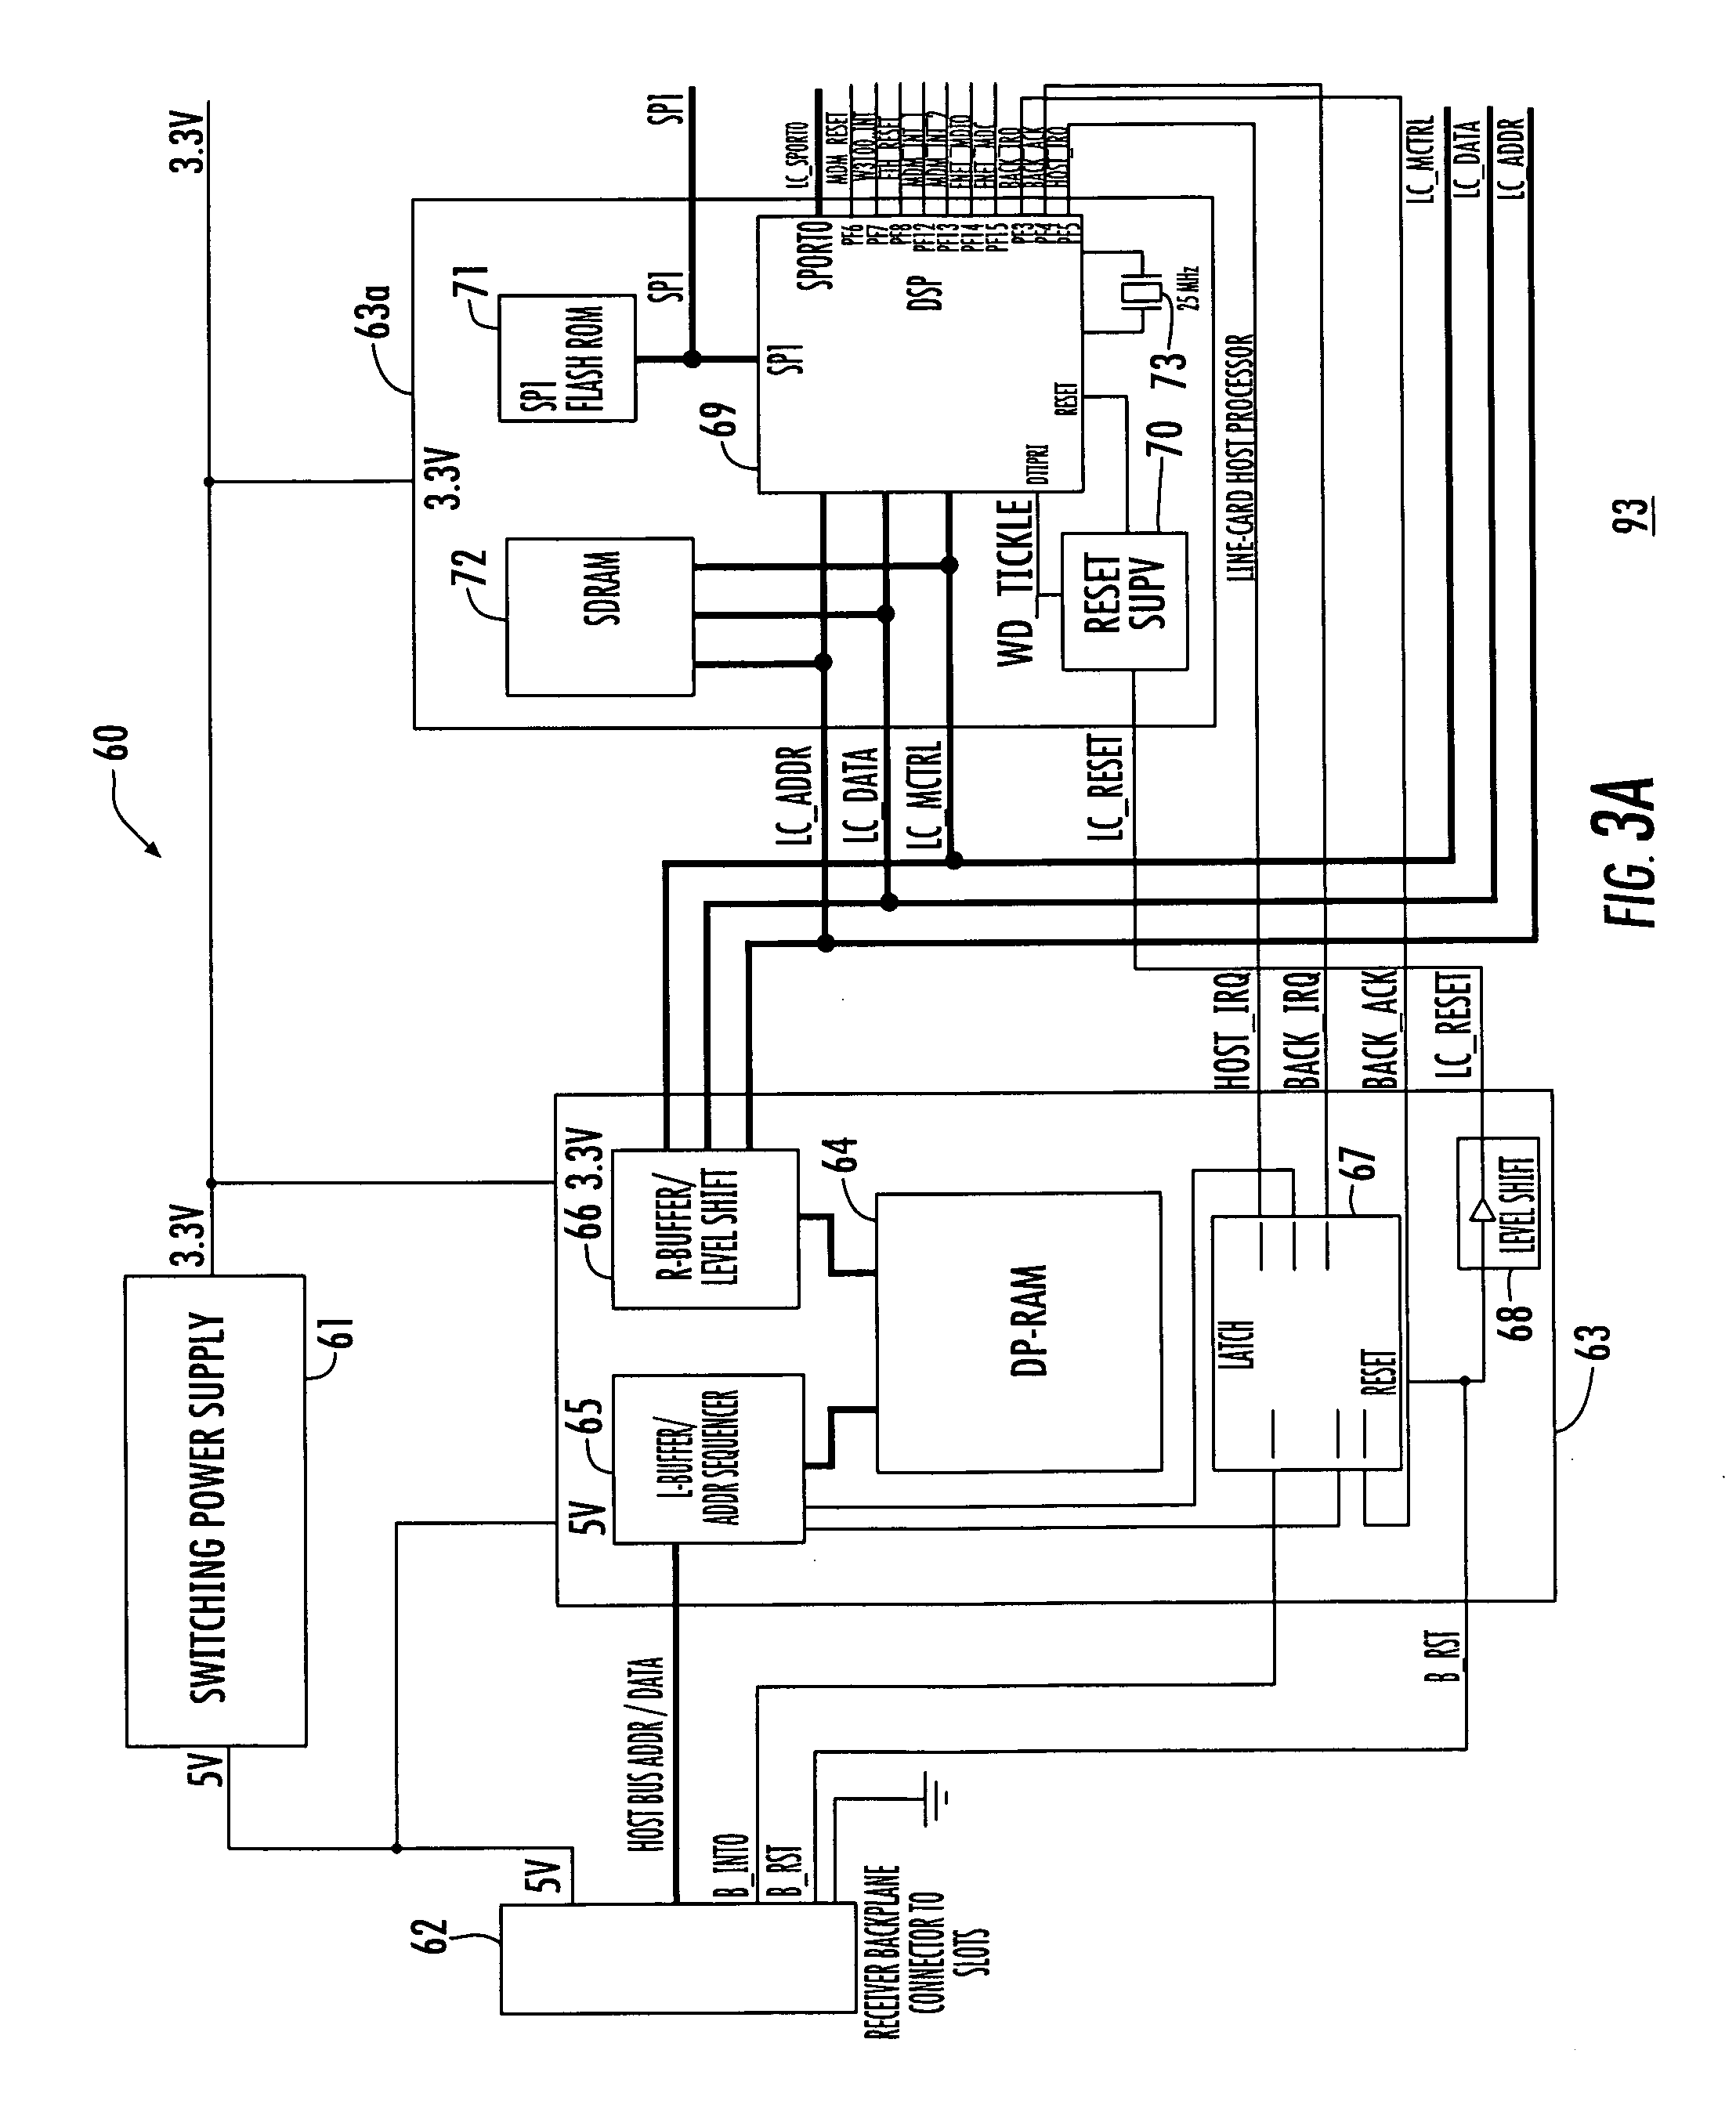 US20090058630A1 20090305 D00004?resize\\\\\\\=665%2C814 goodman sequencer wiring diagram fan sequencer circuit, marvair heat sequencer wiring diagram at readyjetset.co